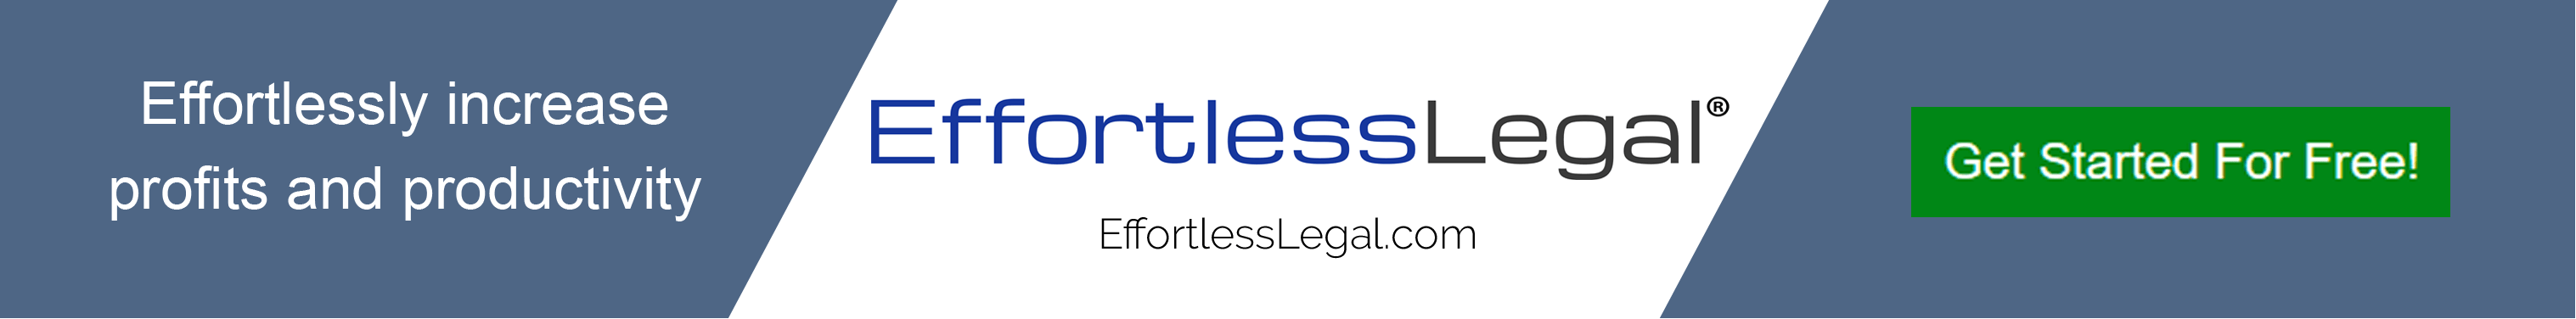 Law Firm Automation, Legal Billing Software and More - EffortlessLegal